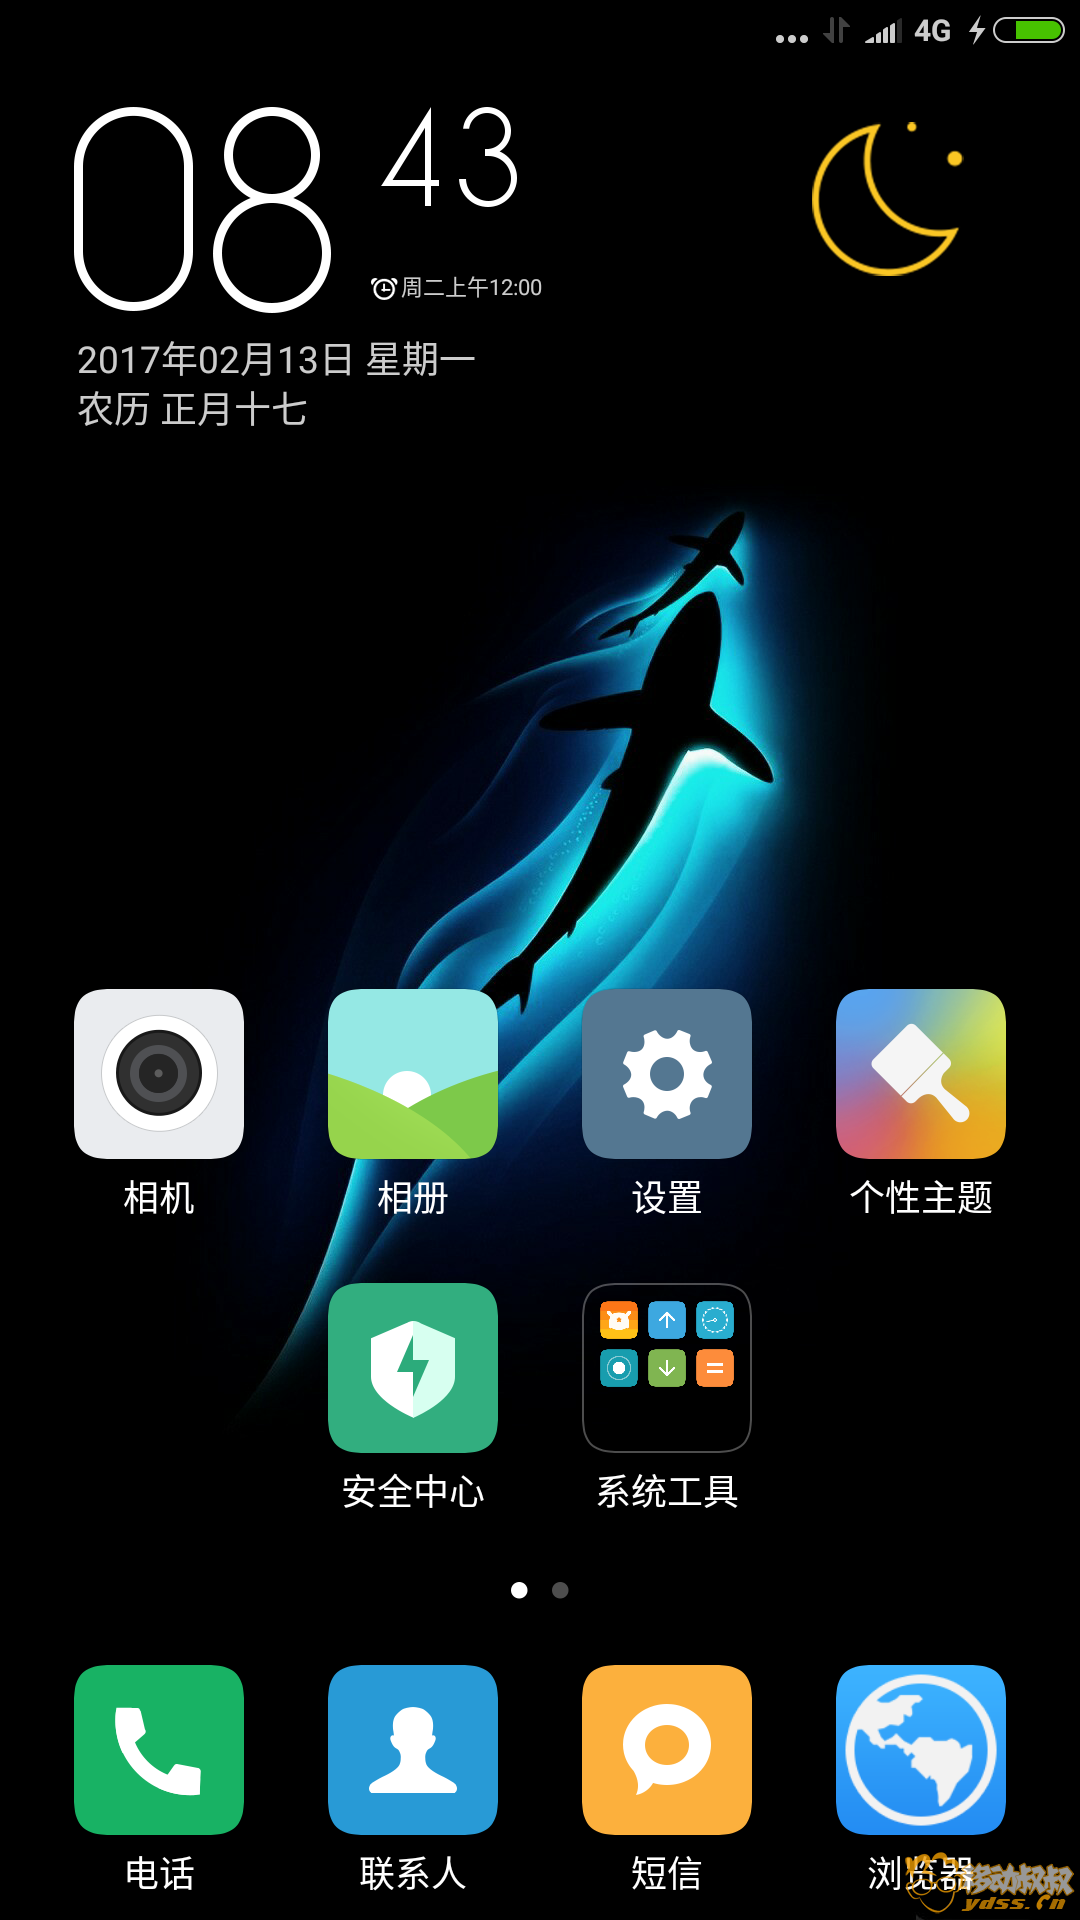 Screenshot_2017-02-13-20-43-32-810_com.miui.home.png